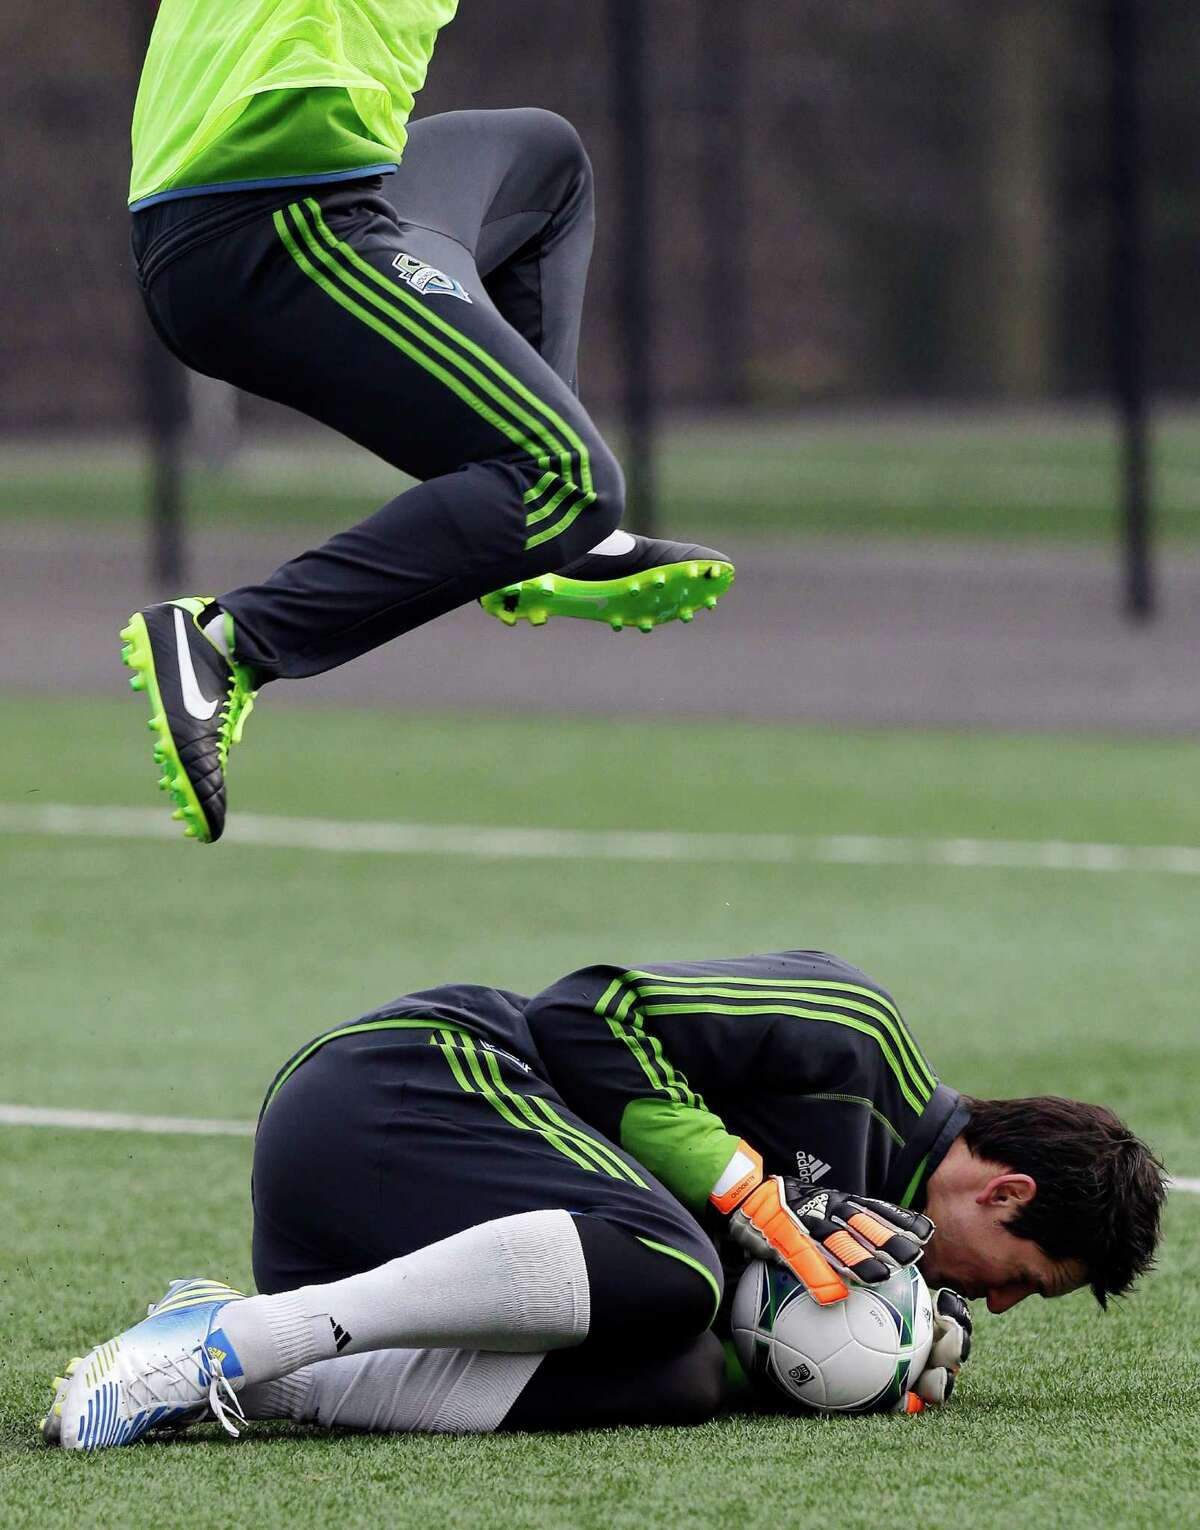 Seattle Sounders goalkeeper Michael Gspurning ducks after making a stop as a player jumps over him during MLS soccer training camp in Tukwila, Wash., Tuesday, Jan. 22, 2013.